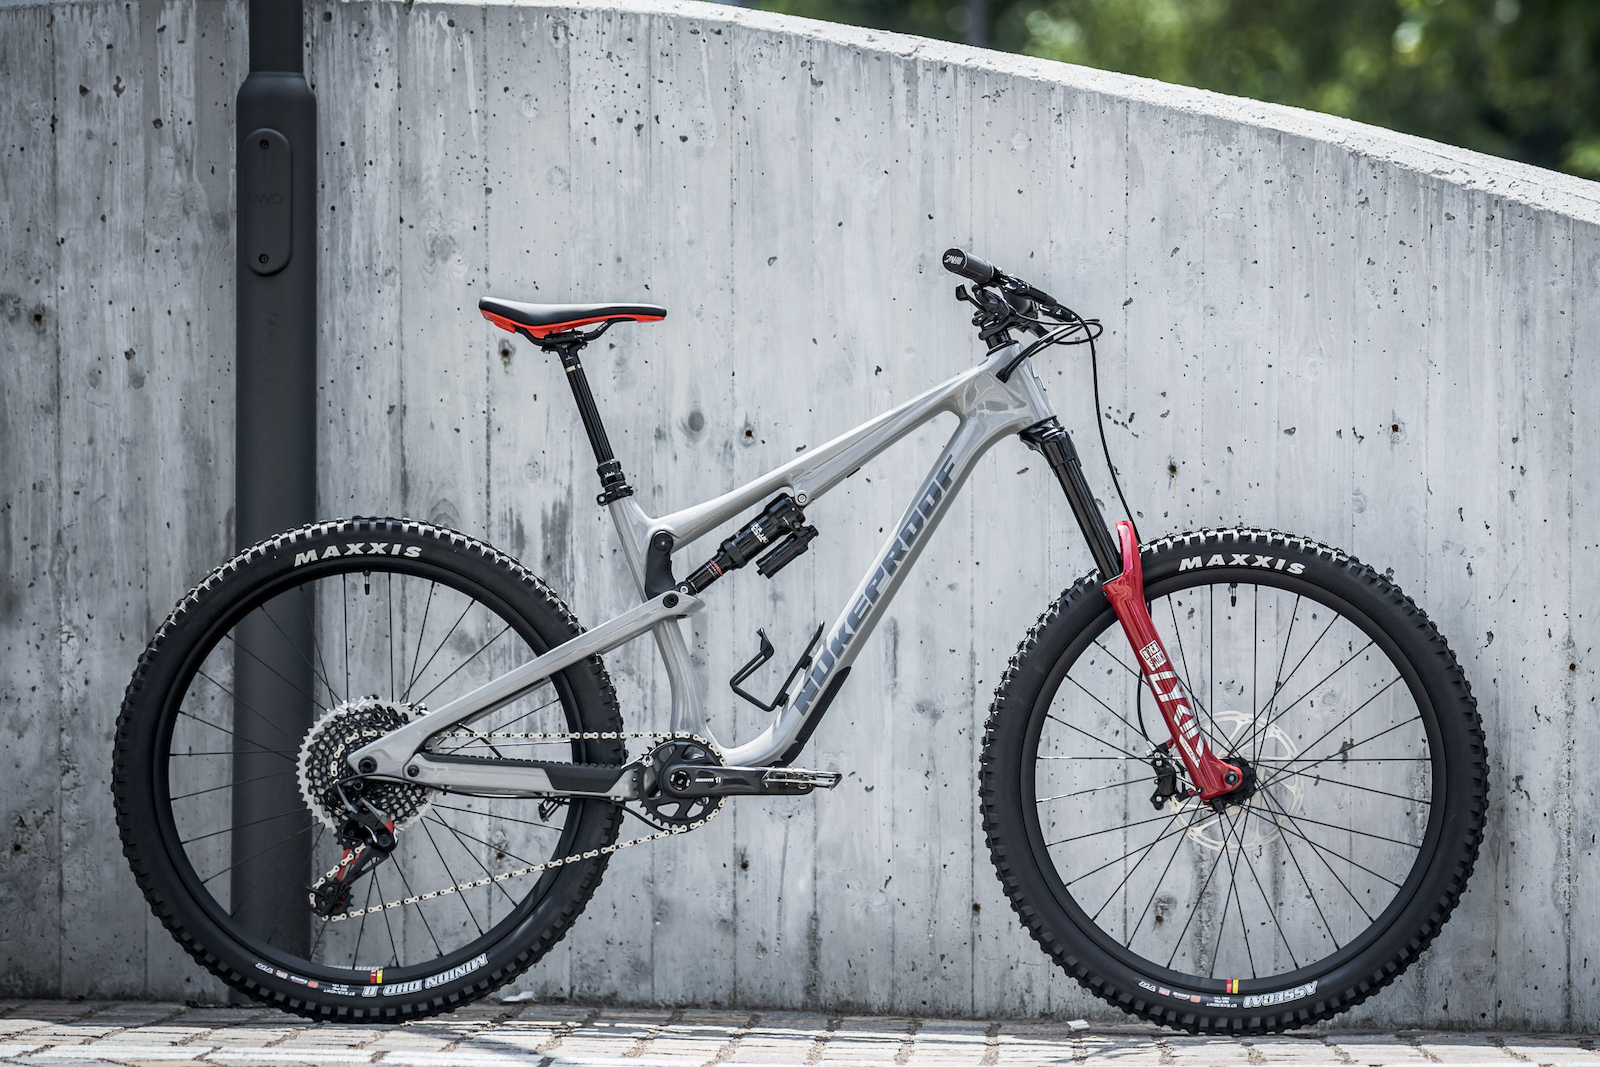 2020 Nukeproof Reactor review